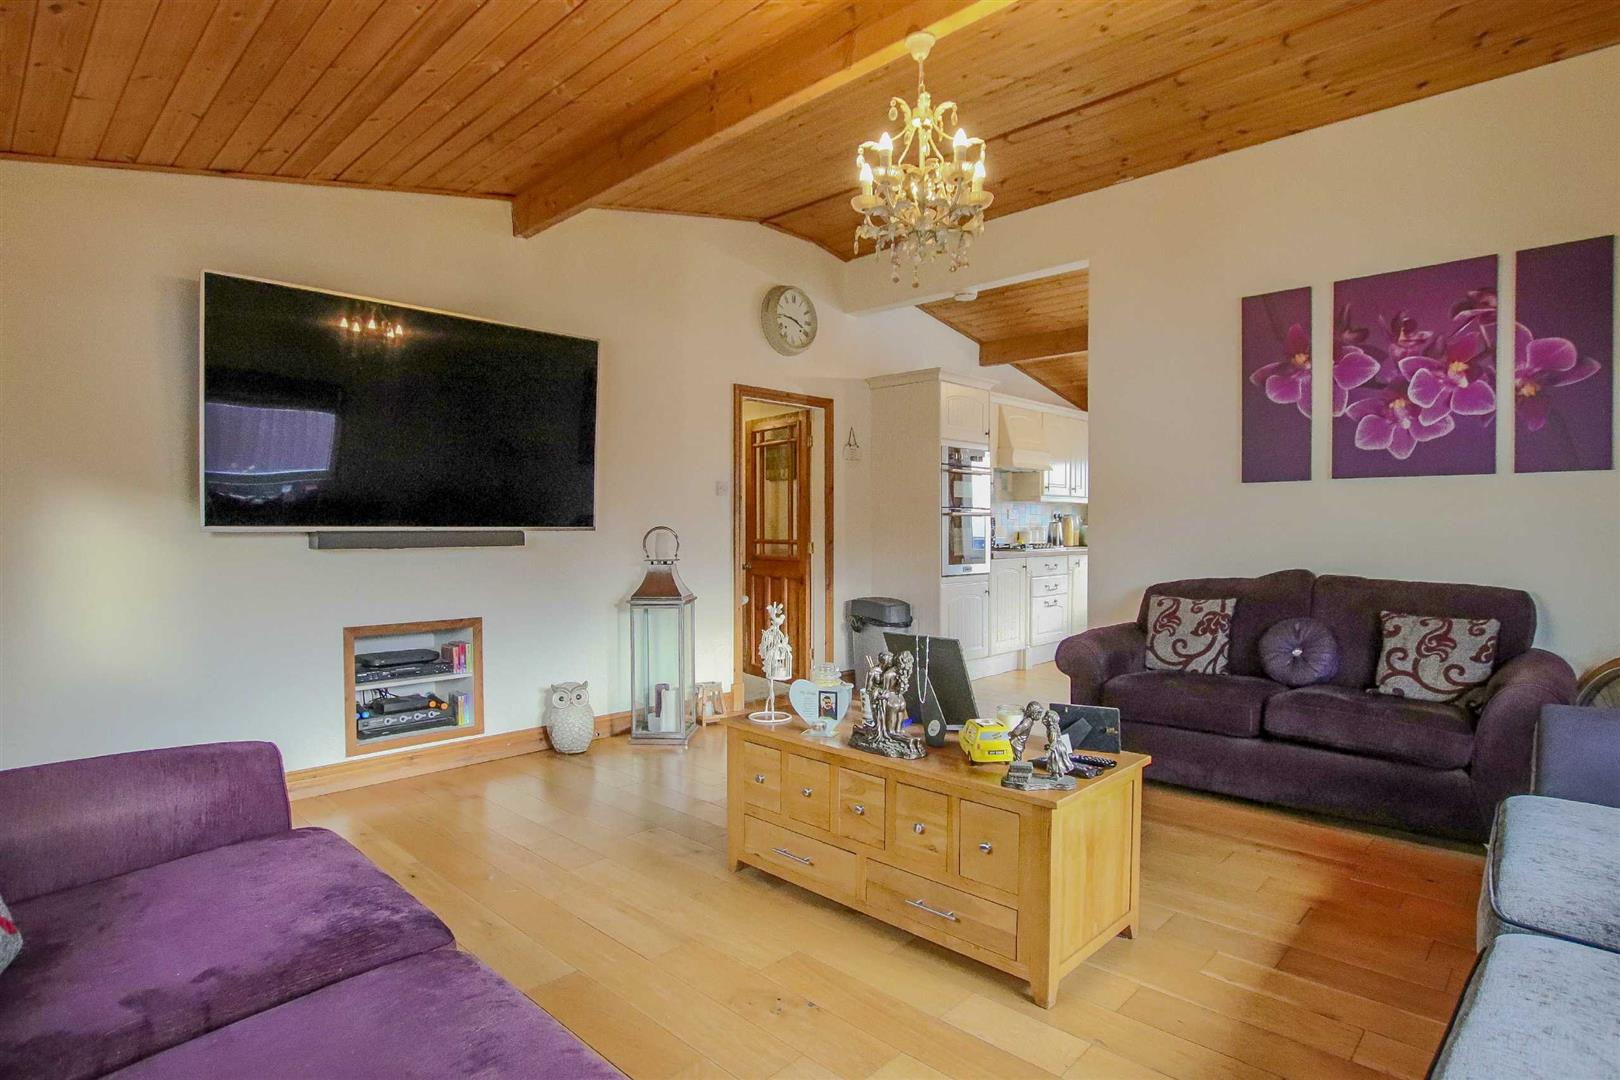 9 Bedroom Barn Conversion For Sale - Image 24